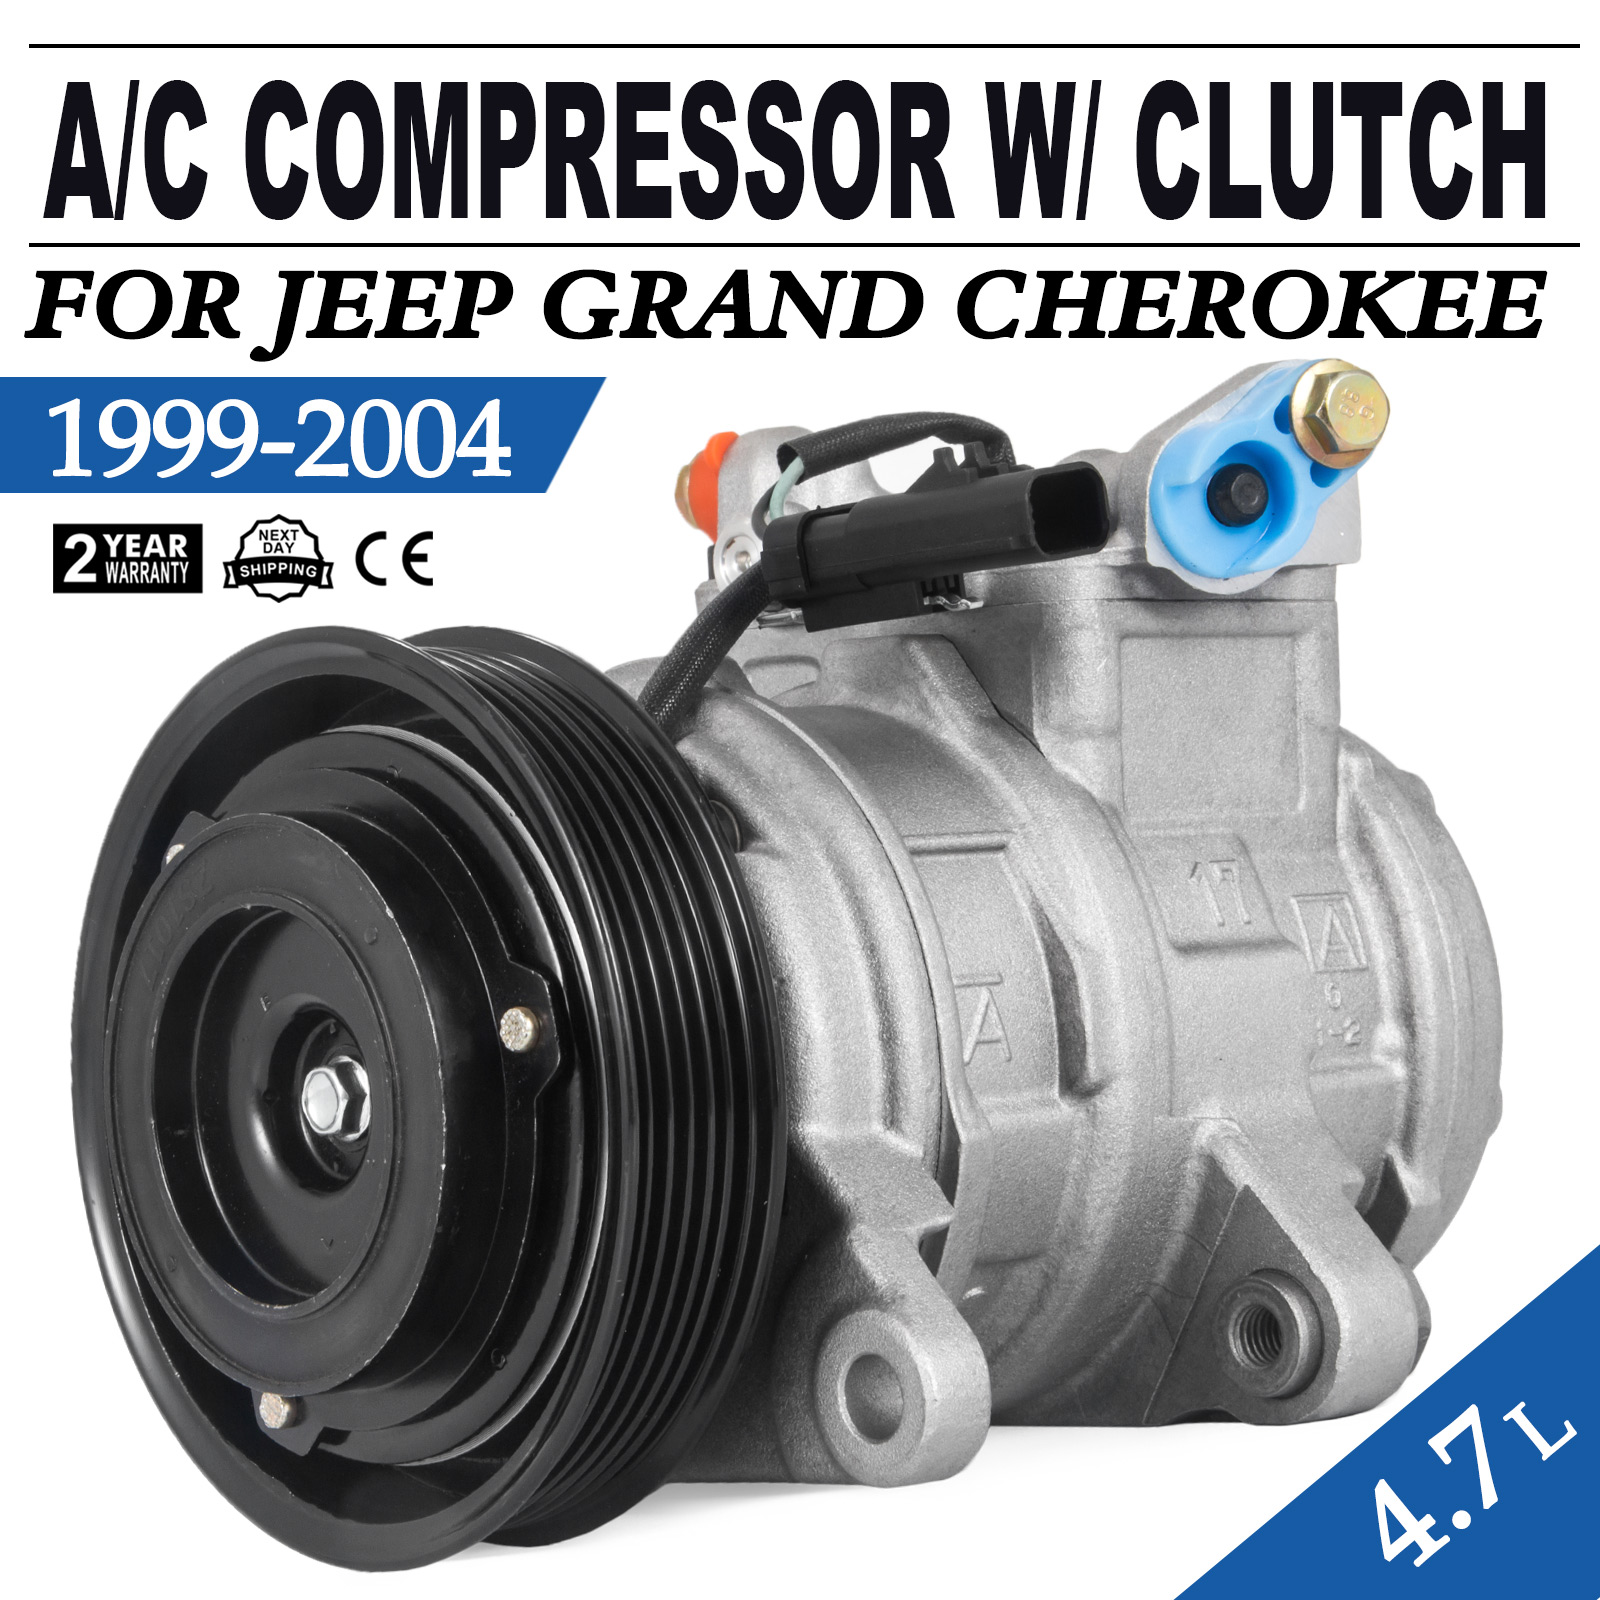 New A//C Compressor and Clutch CO 22033C fits 1999-2004 Jeep Grand Cherokee 4.7L